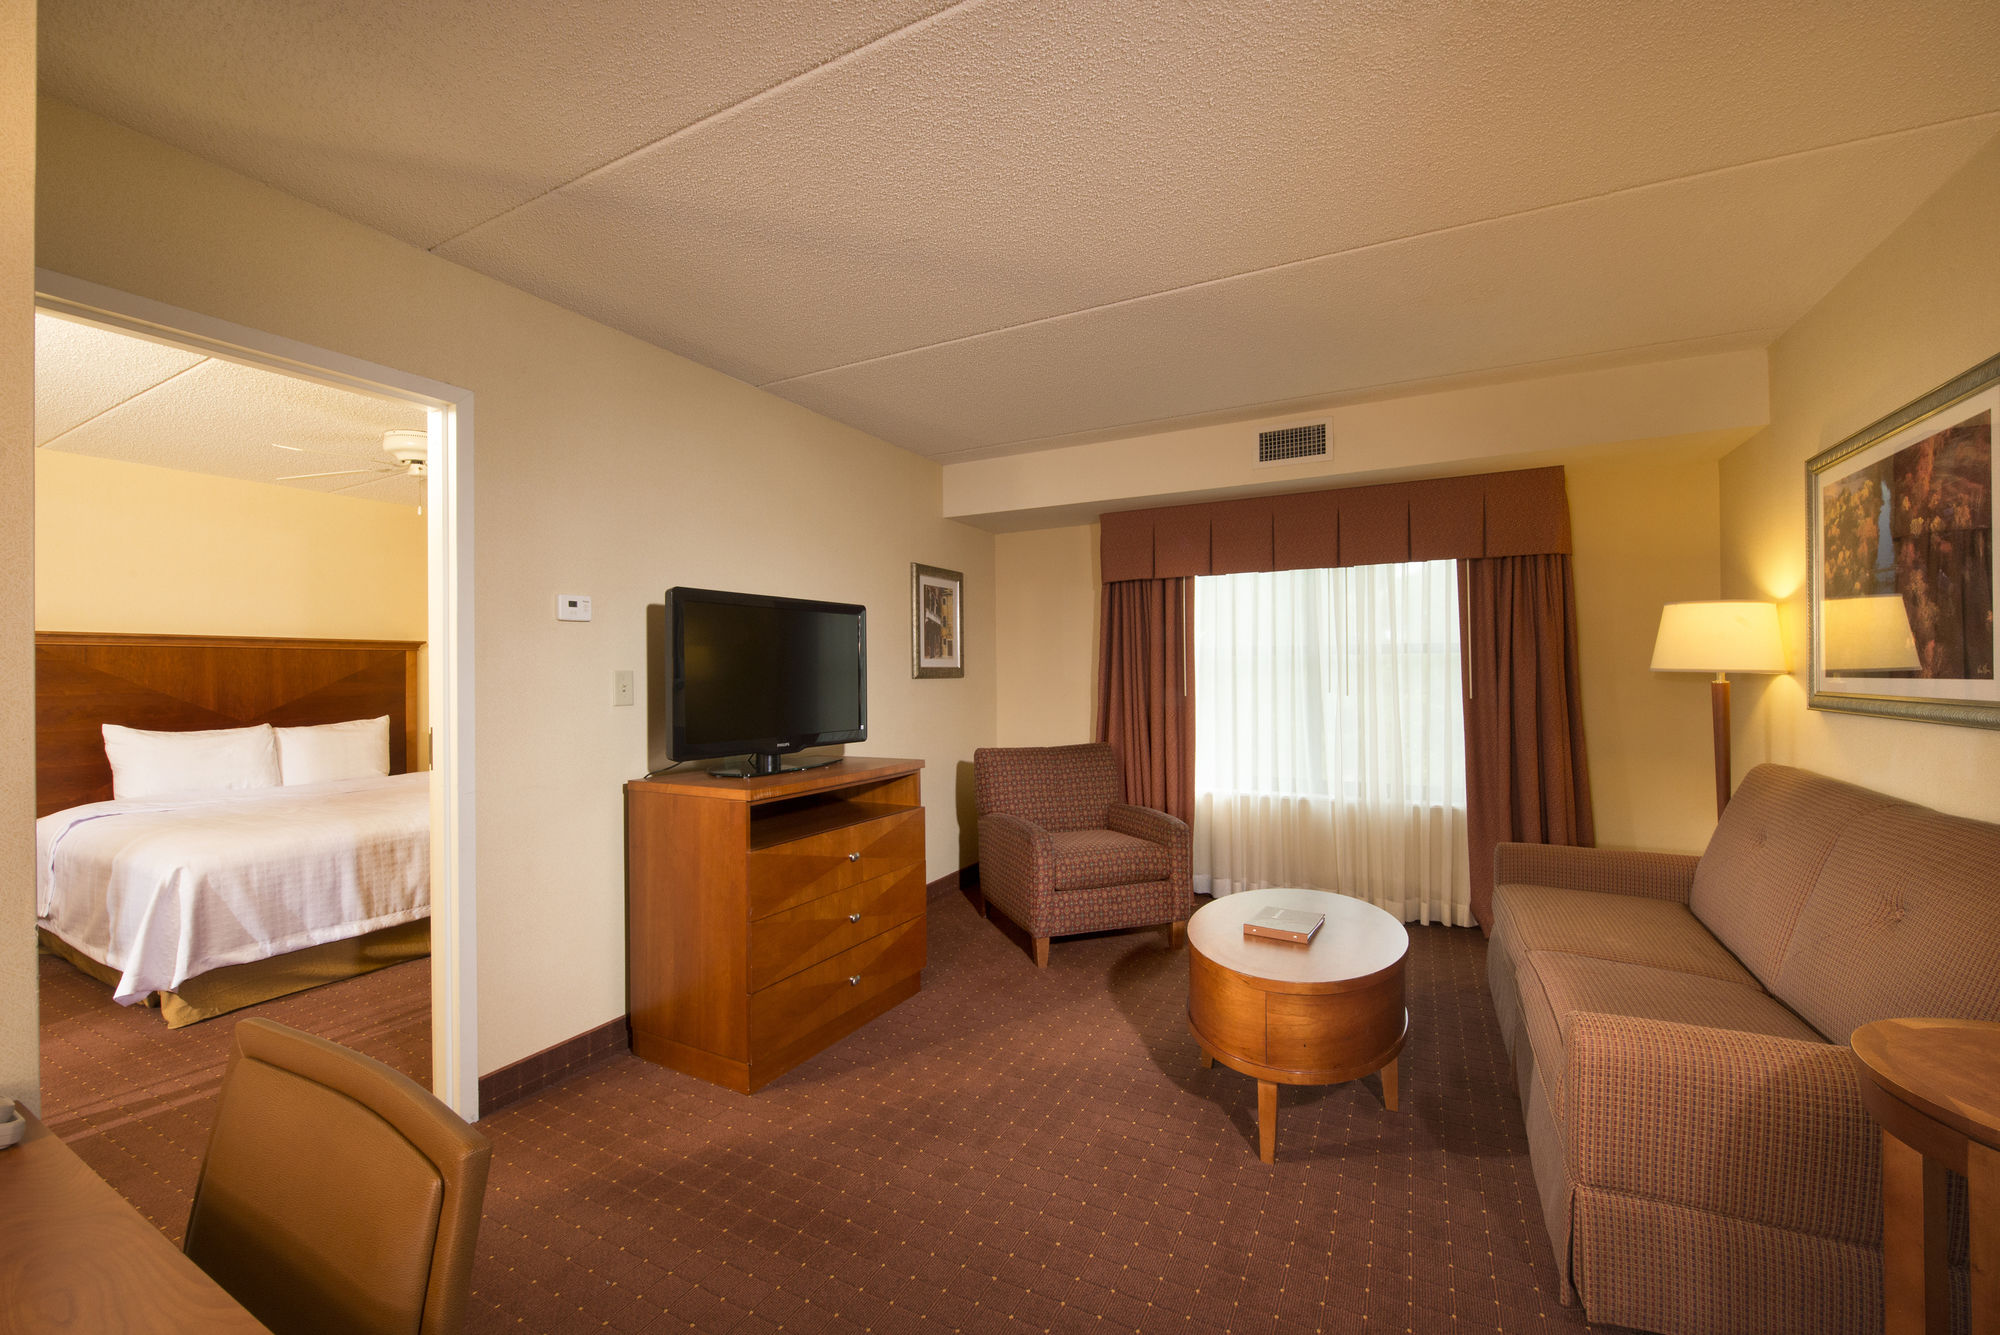 Homewood Suites by Hilton Newark-Wilmington South in Newark, DE